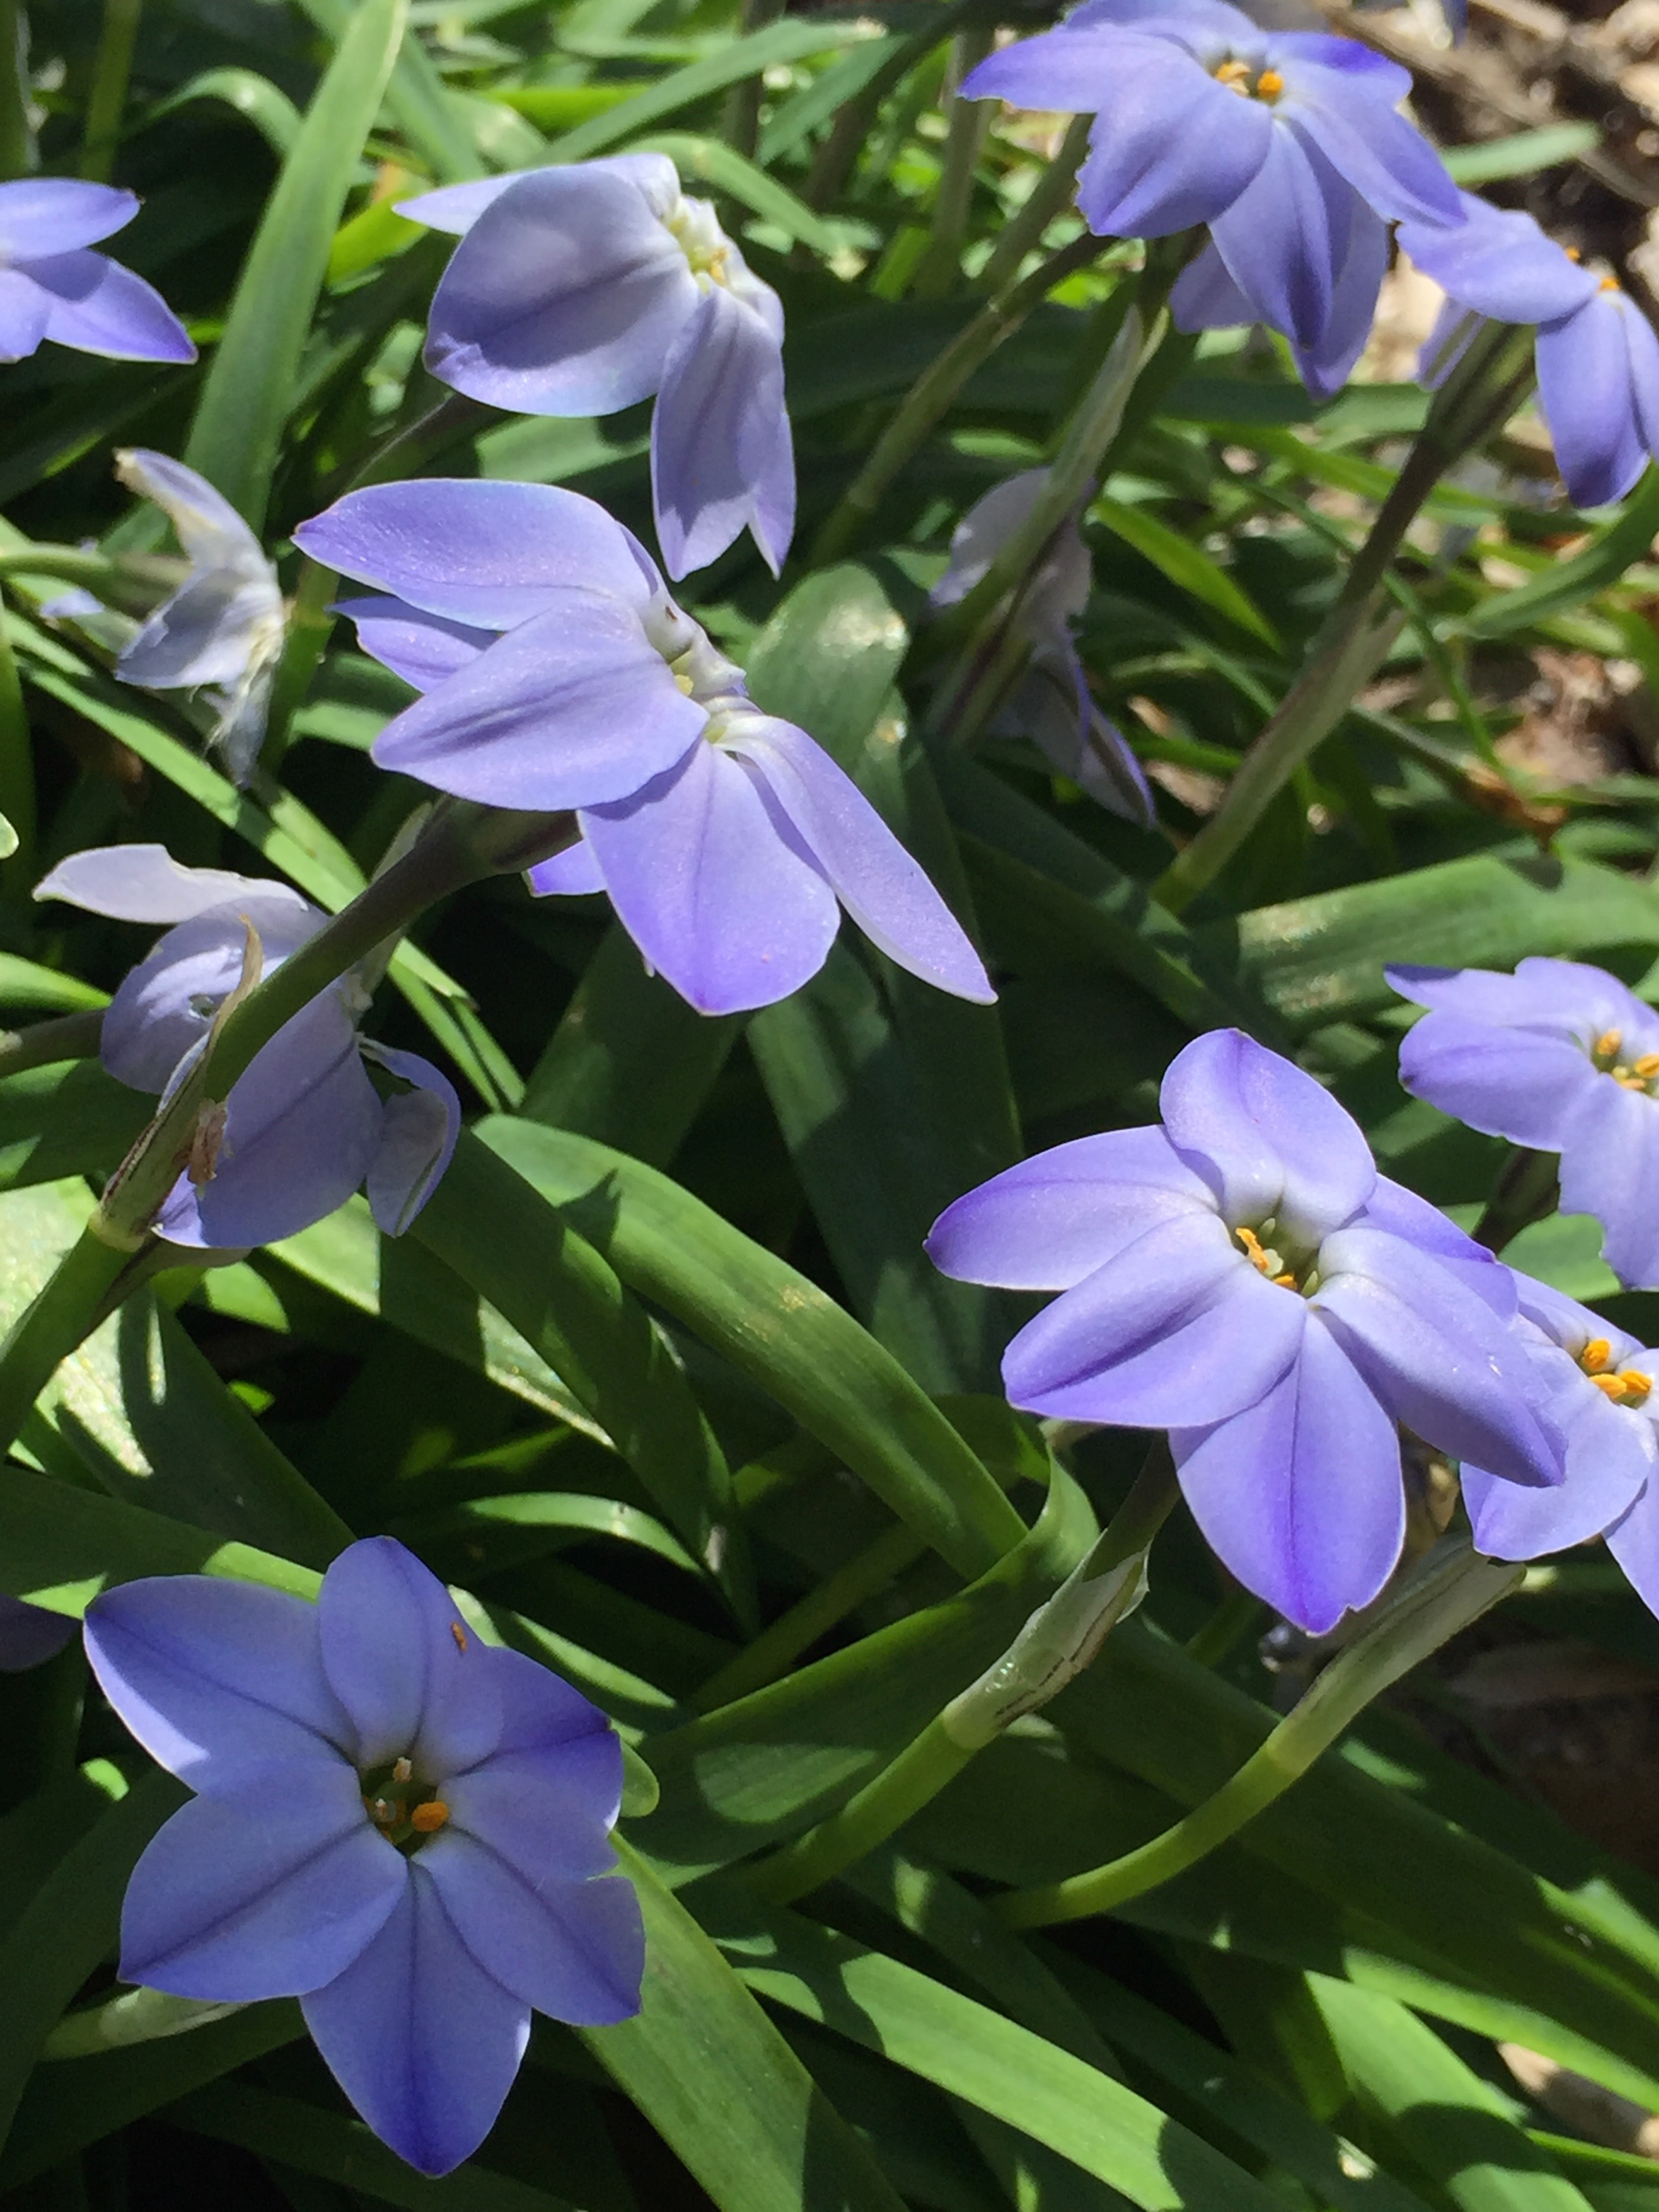 Ipheion uniflorum  'Wisley Blue', or Spring Star Flower. An Argentinian bulb that requires very little water and has a nice clumping, spreading habitat. Often the first flower out in spring, although it's usually a race between this and my manzanita bushes.